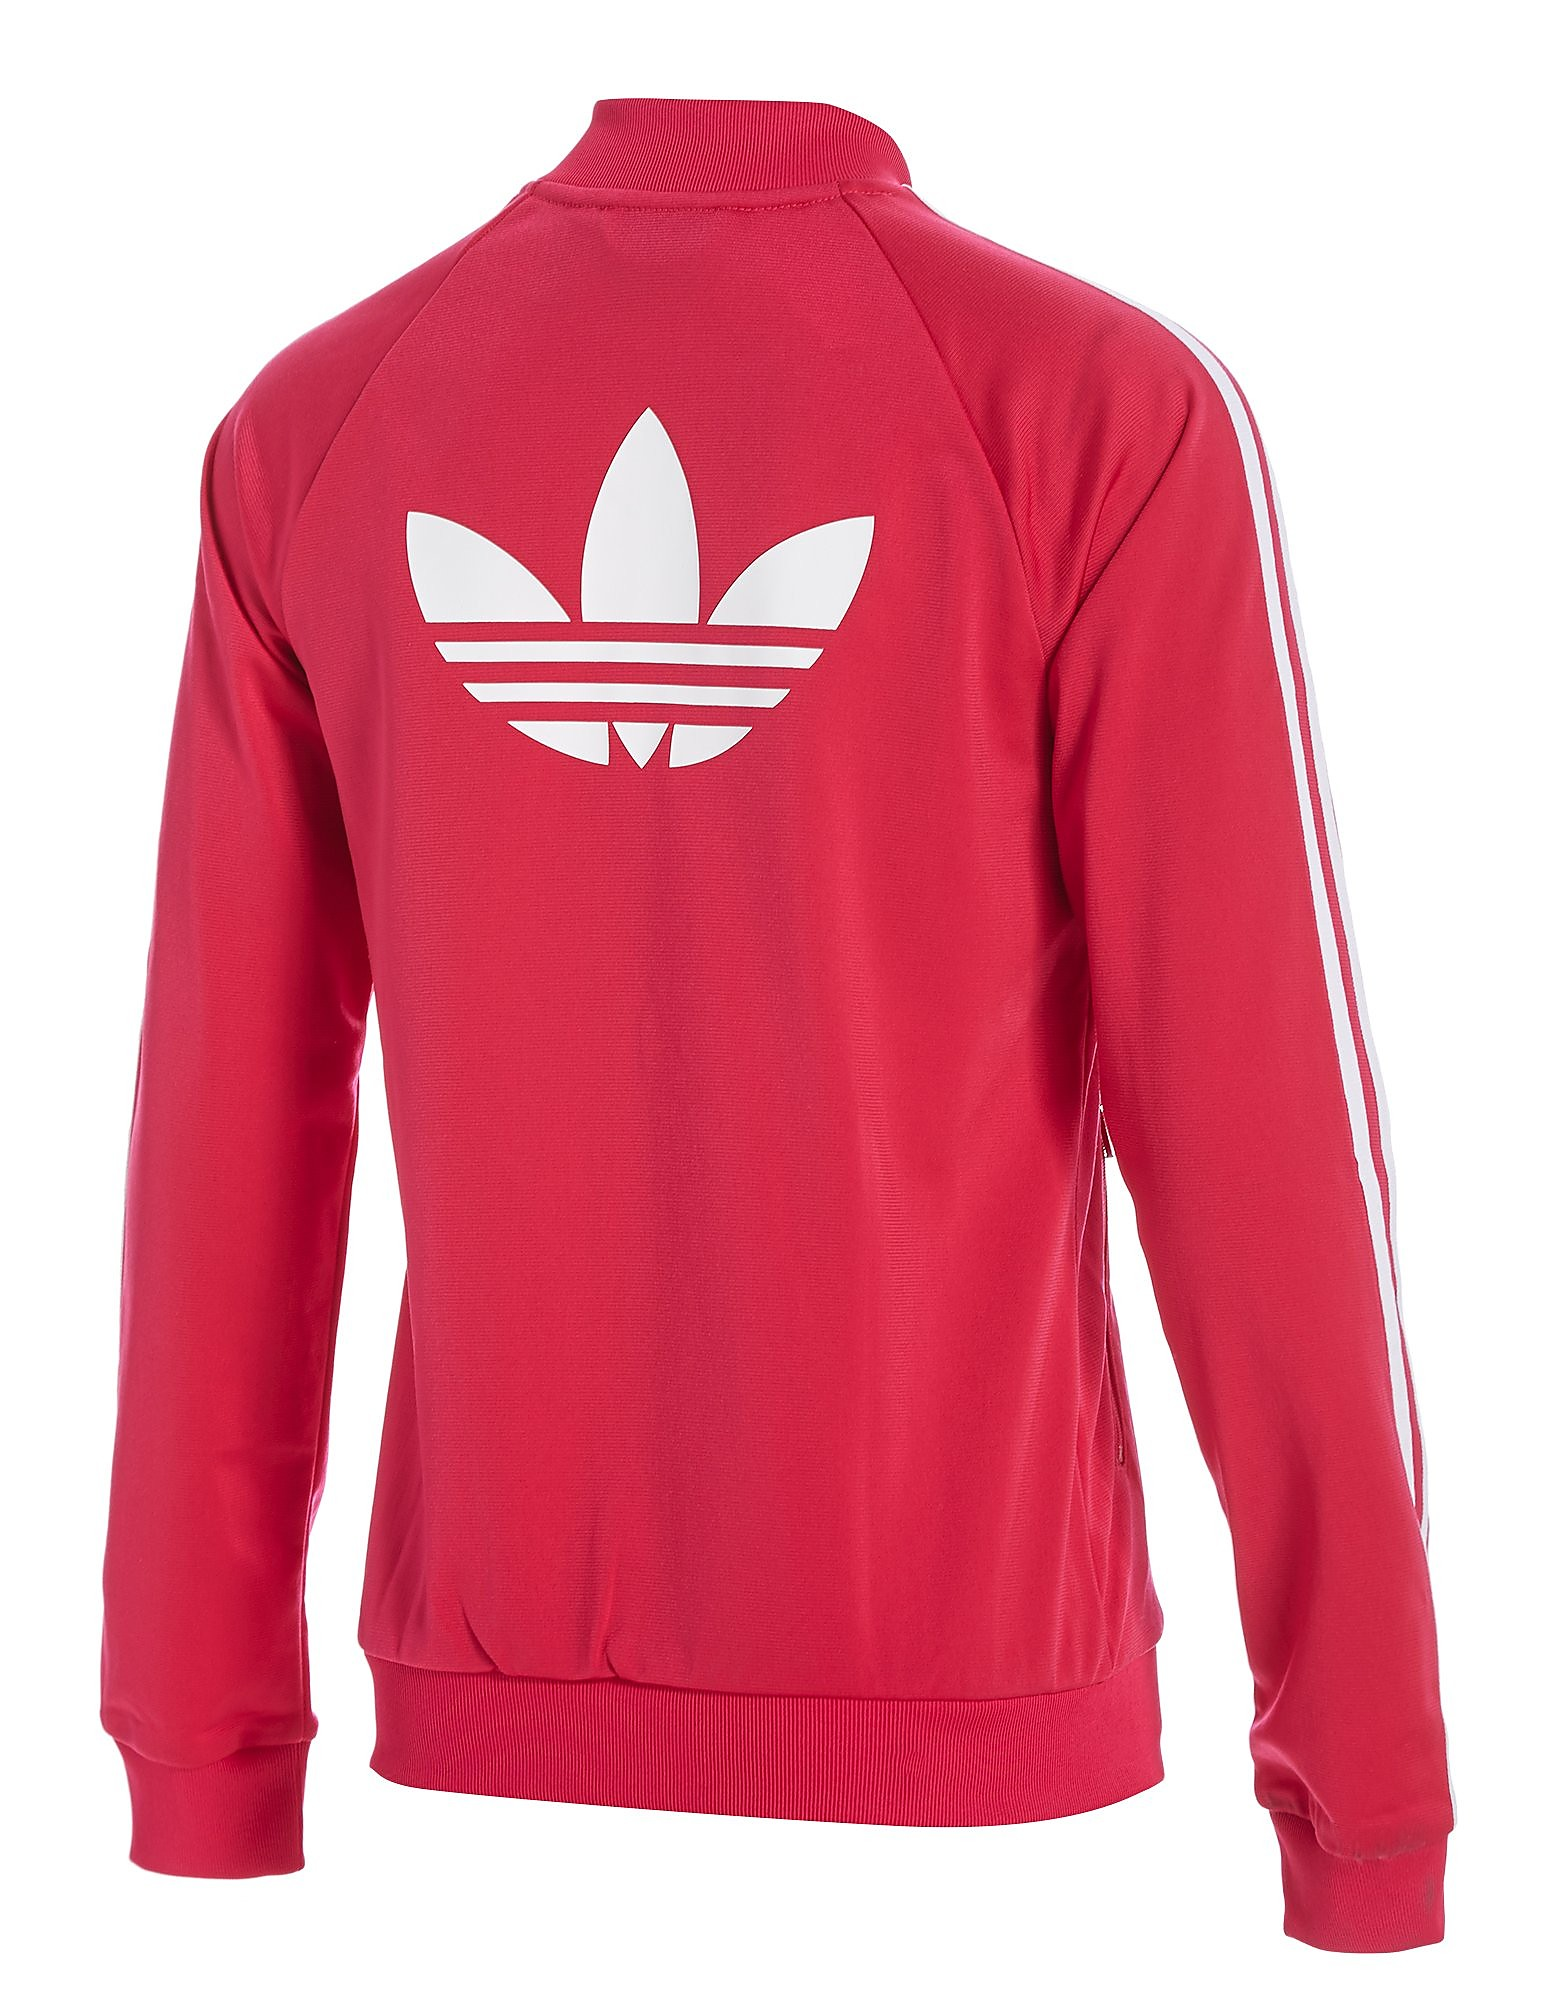 adidas Originals Girls' Supergirl Track Top Junior